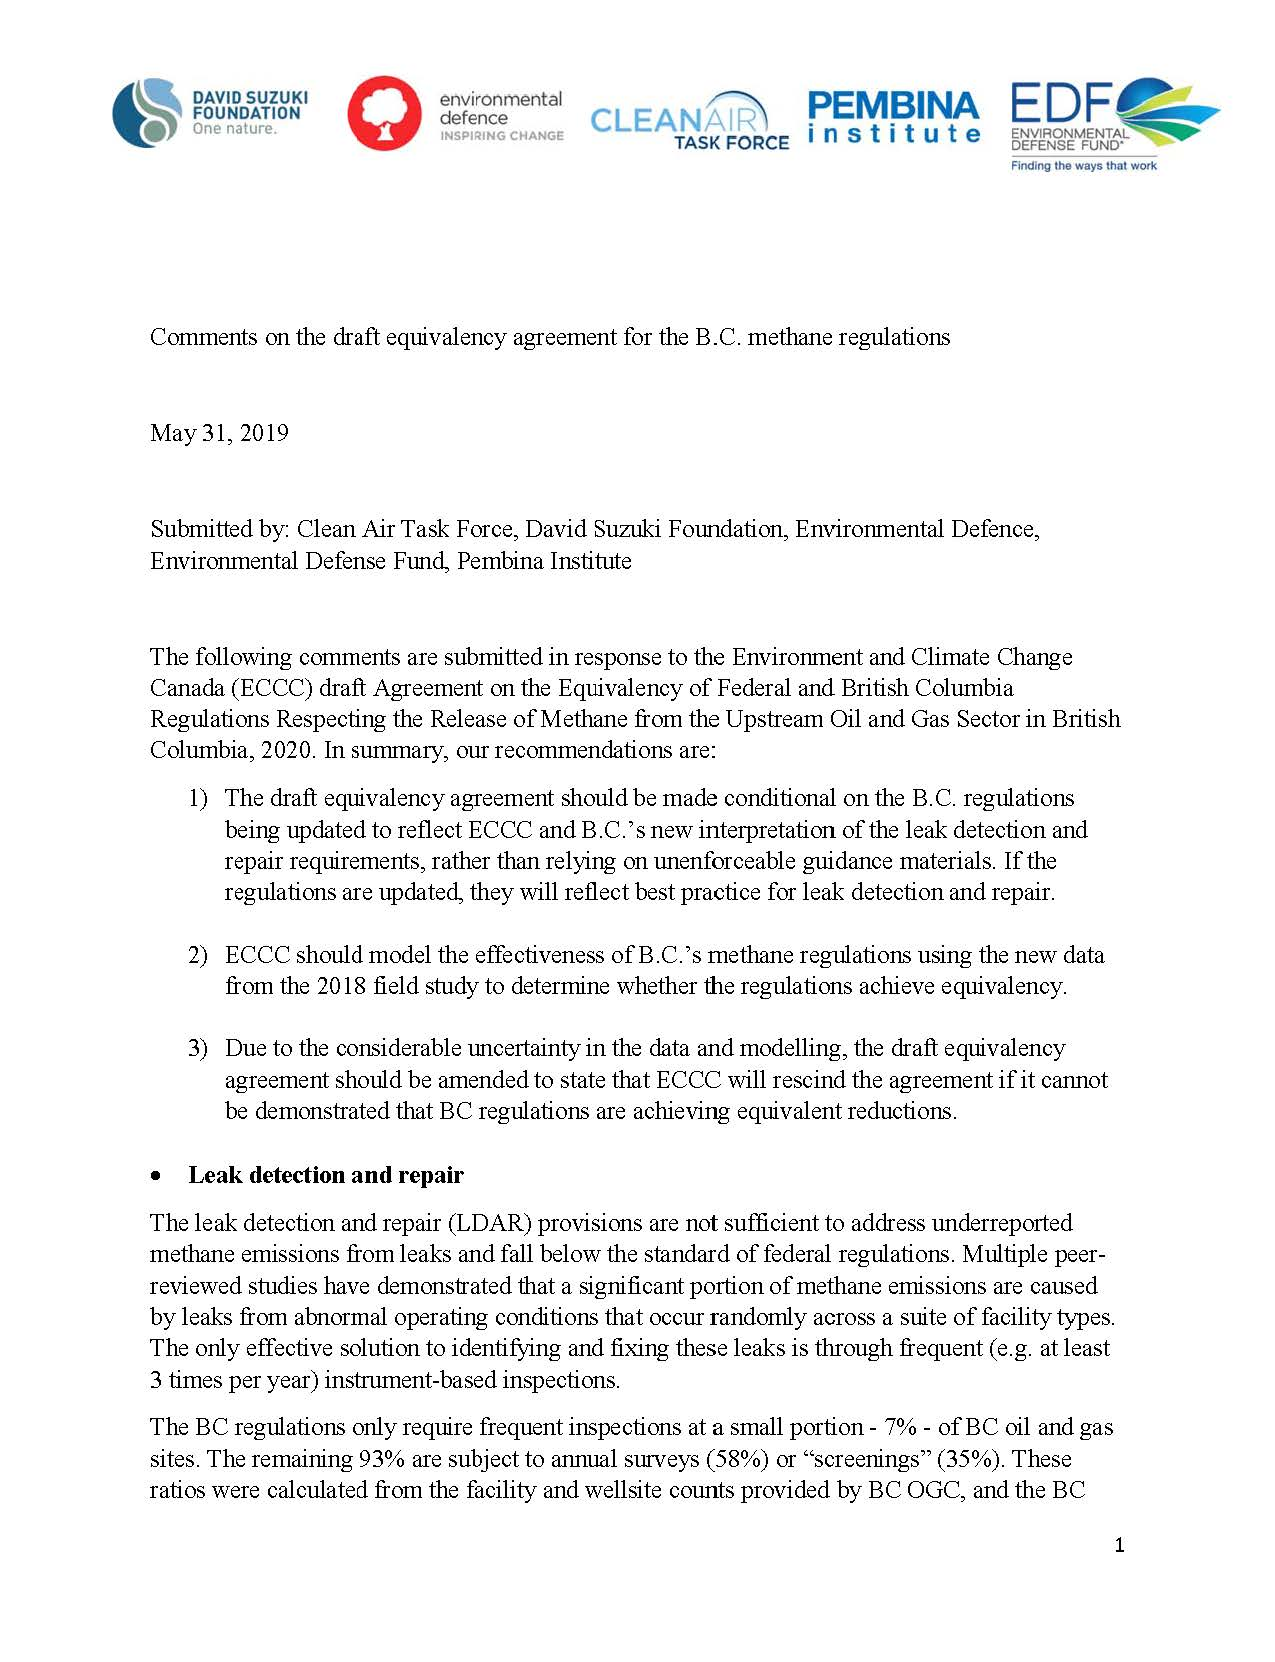 The cover of Environmental Defence's joint submission on granting BC methane regulations equivilancy